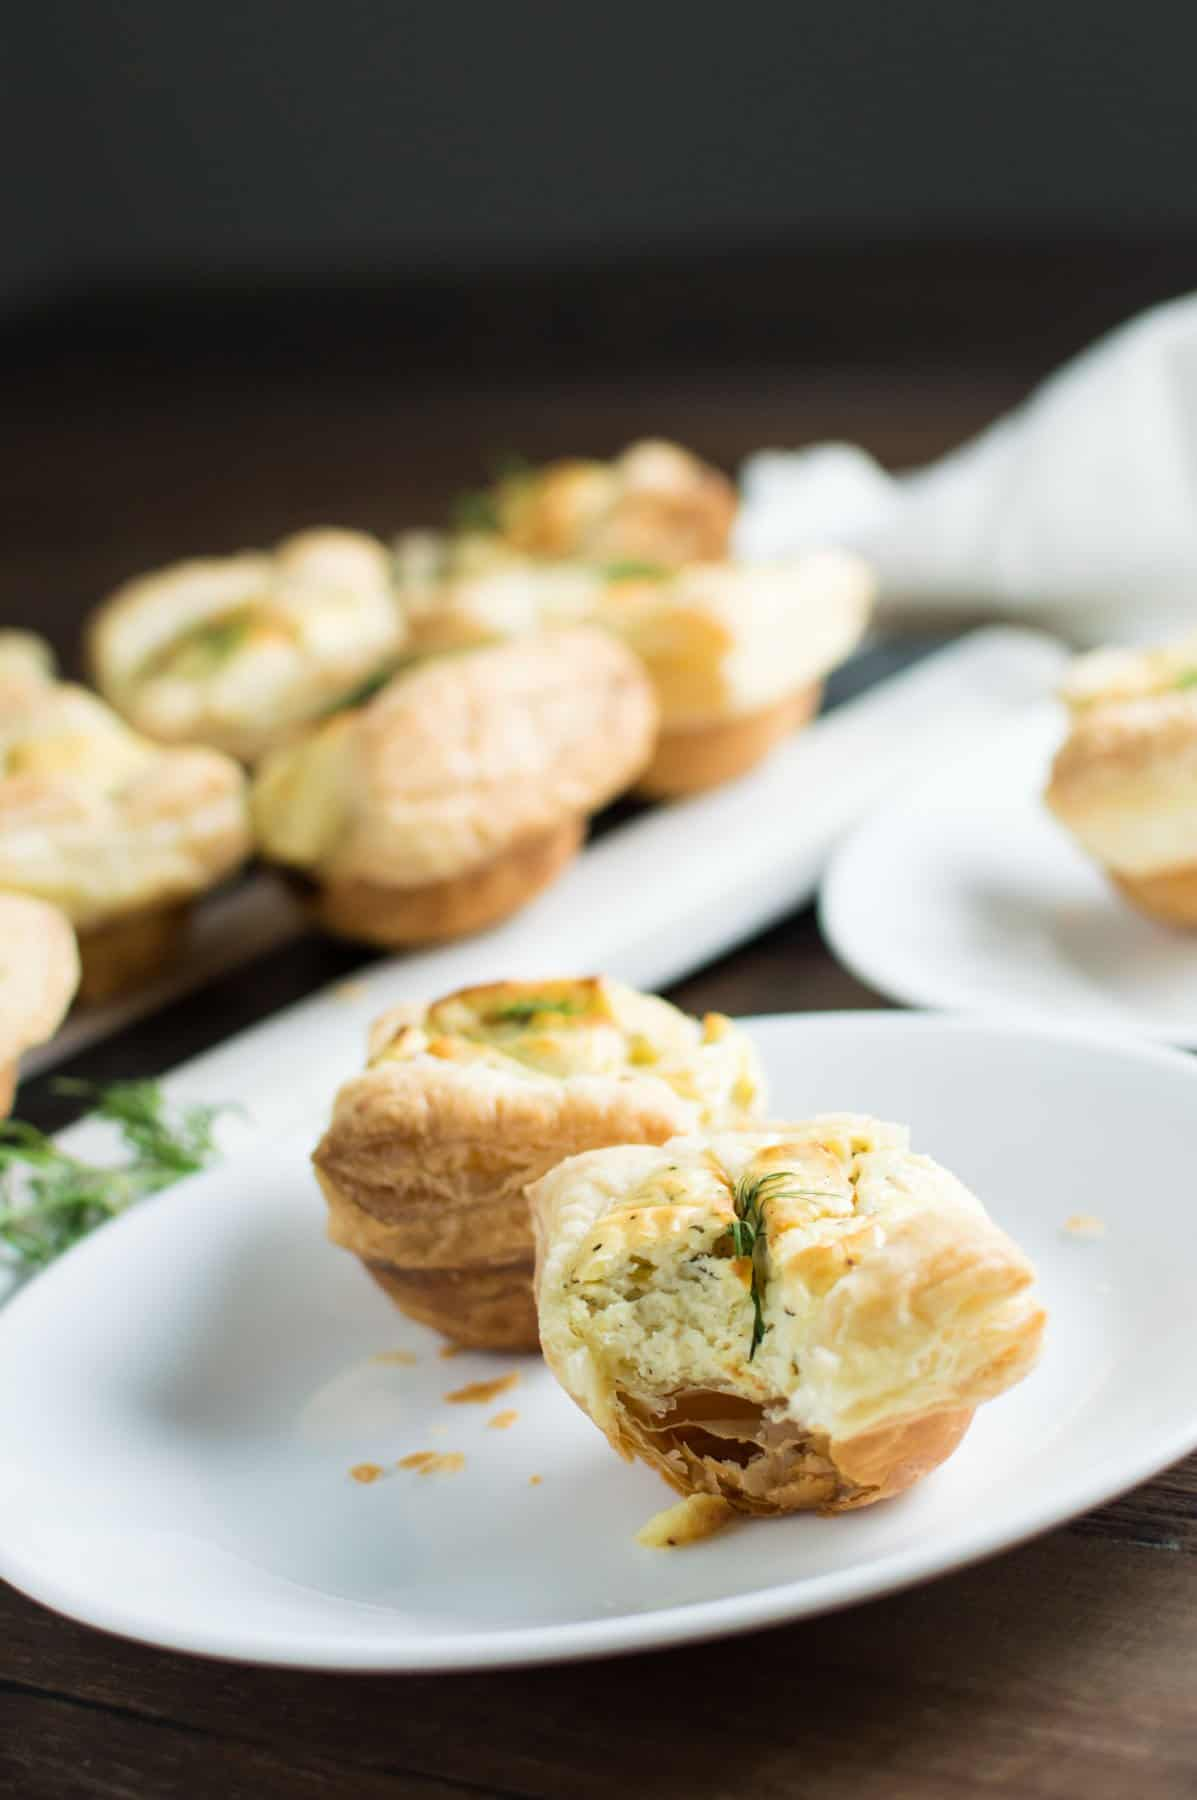 Goat Cheese and Dill Tarts With Bite Taken Out